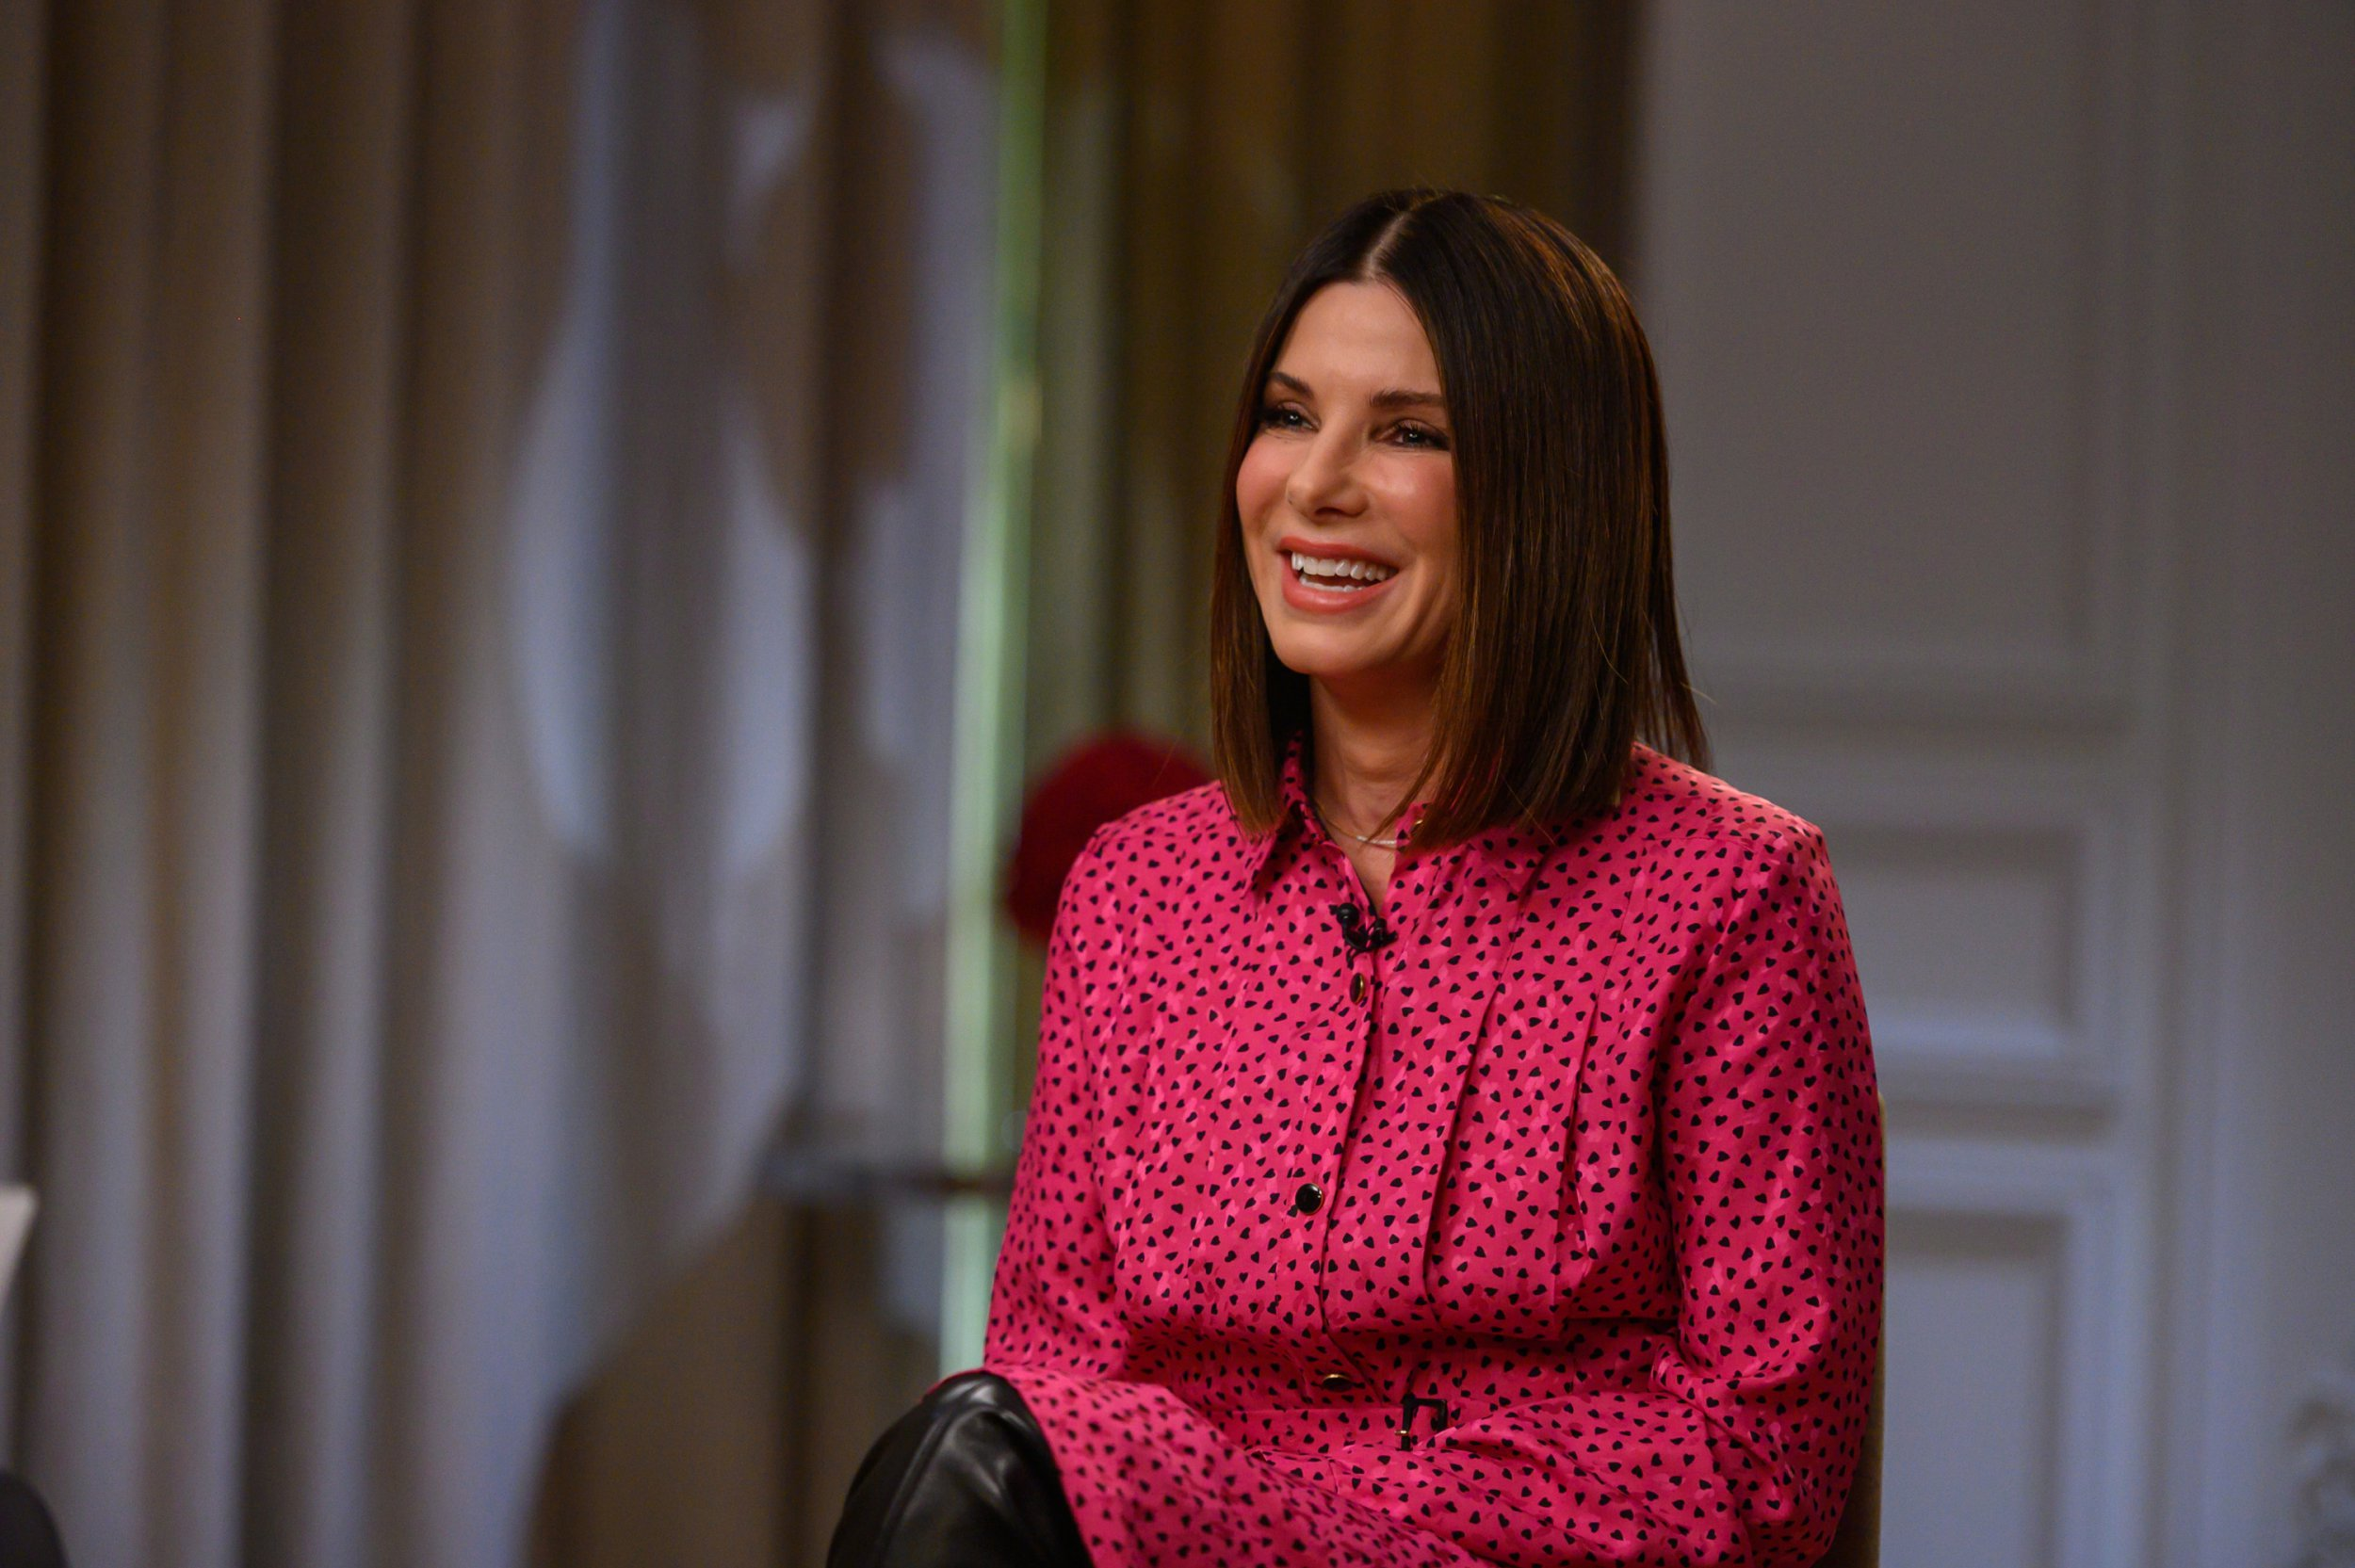 TODAY -- Pictured: Sandra Bullock on Tuesday, December 18, 2018 -- (Photo by: Nathan Congleton/NBC/NBCU Photo Bank via Getty Images)